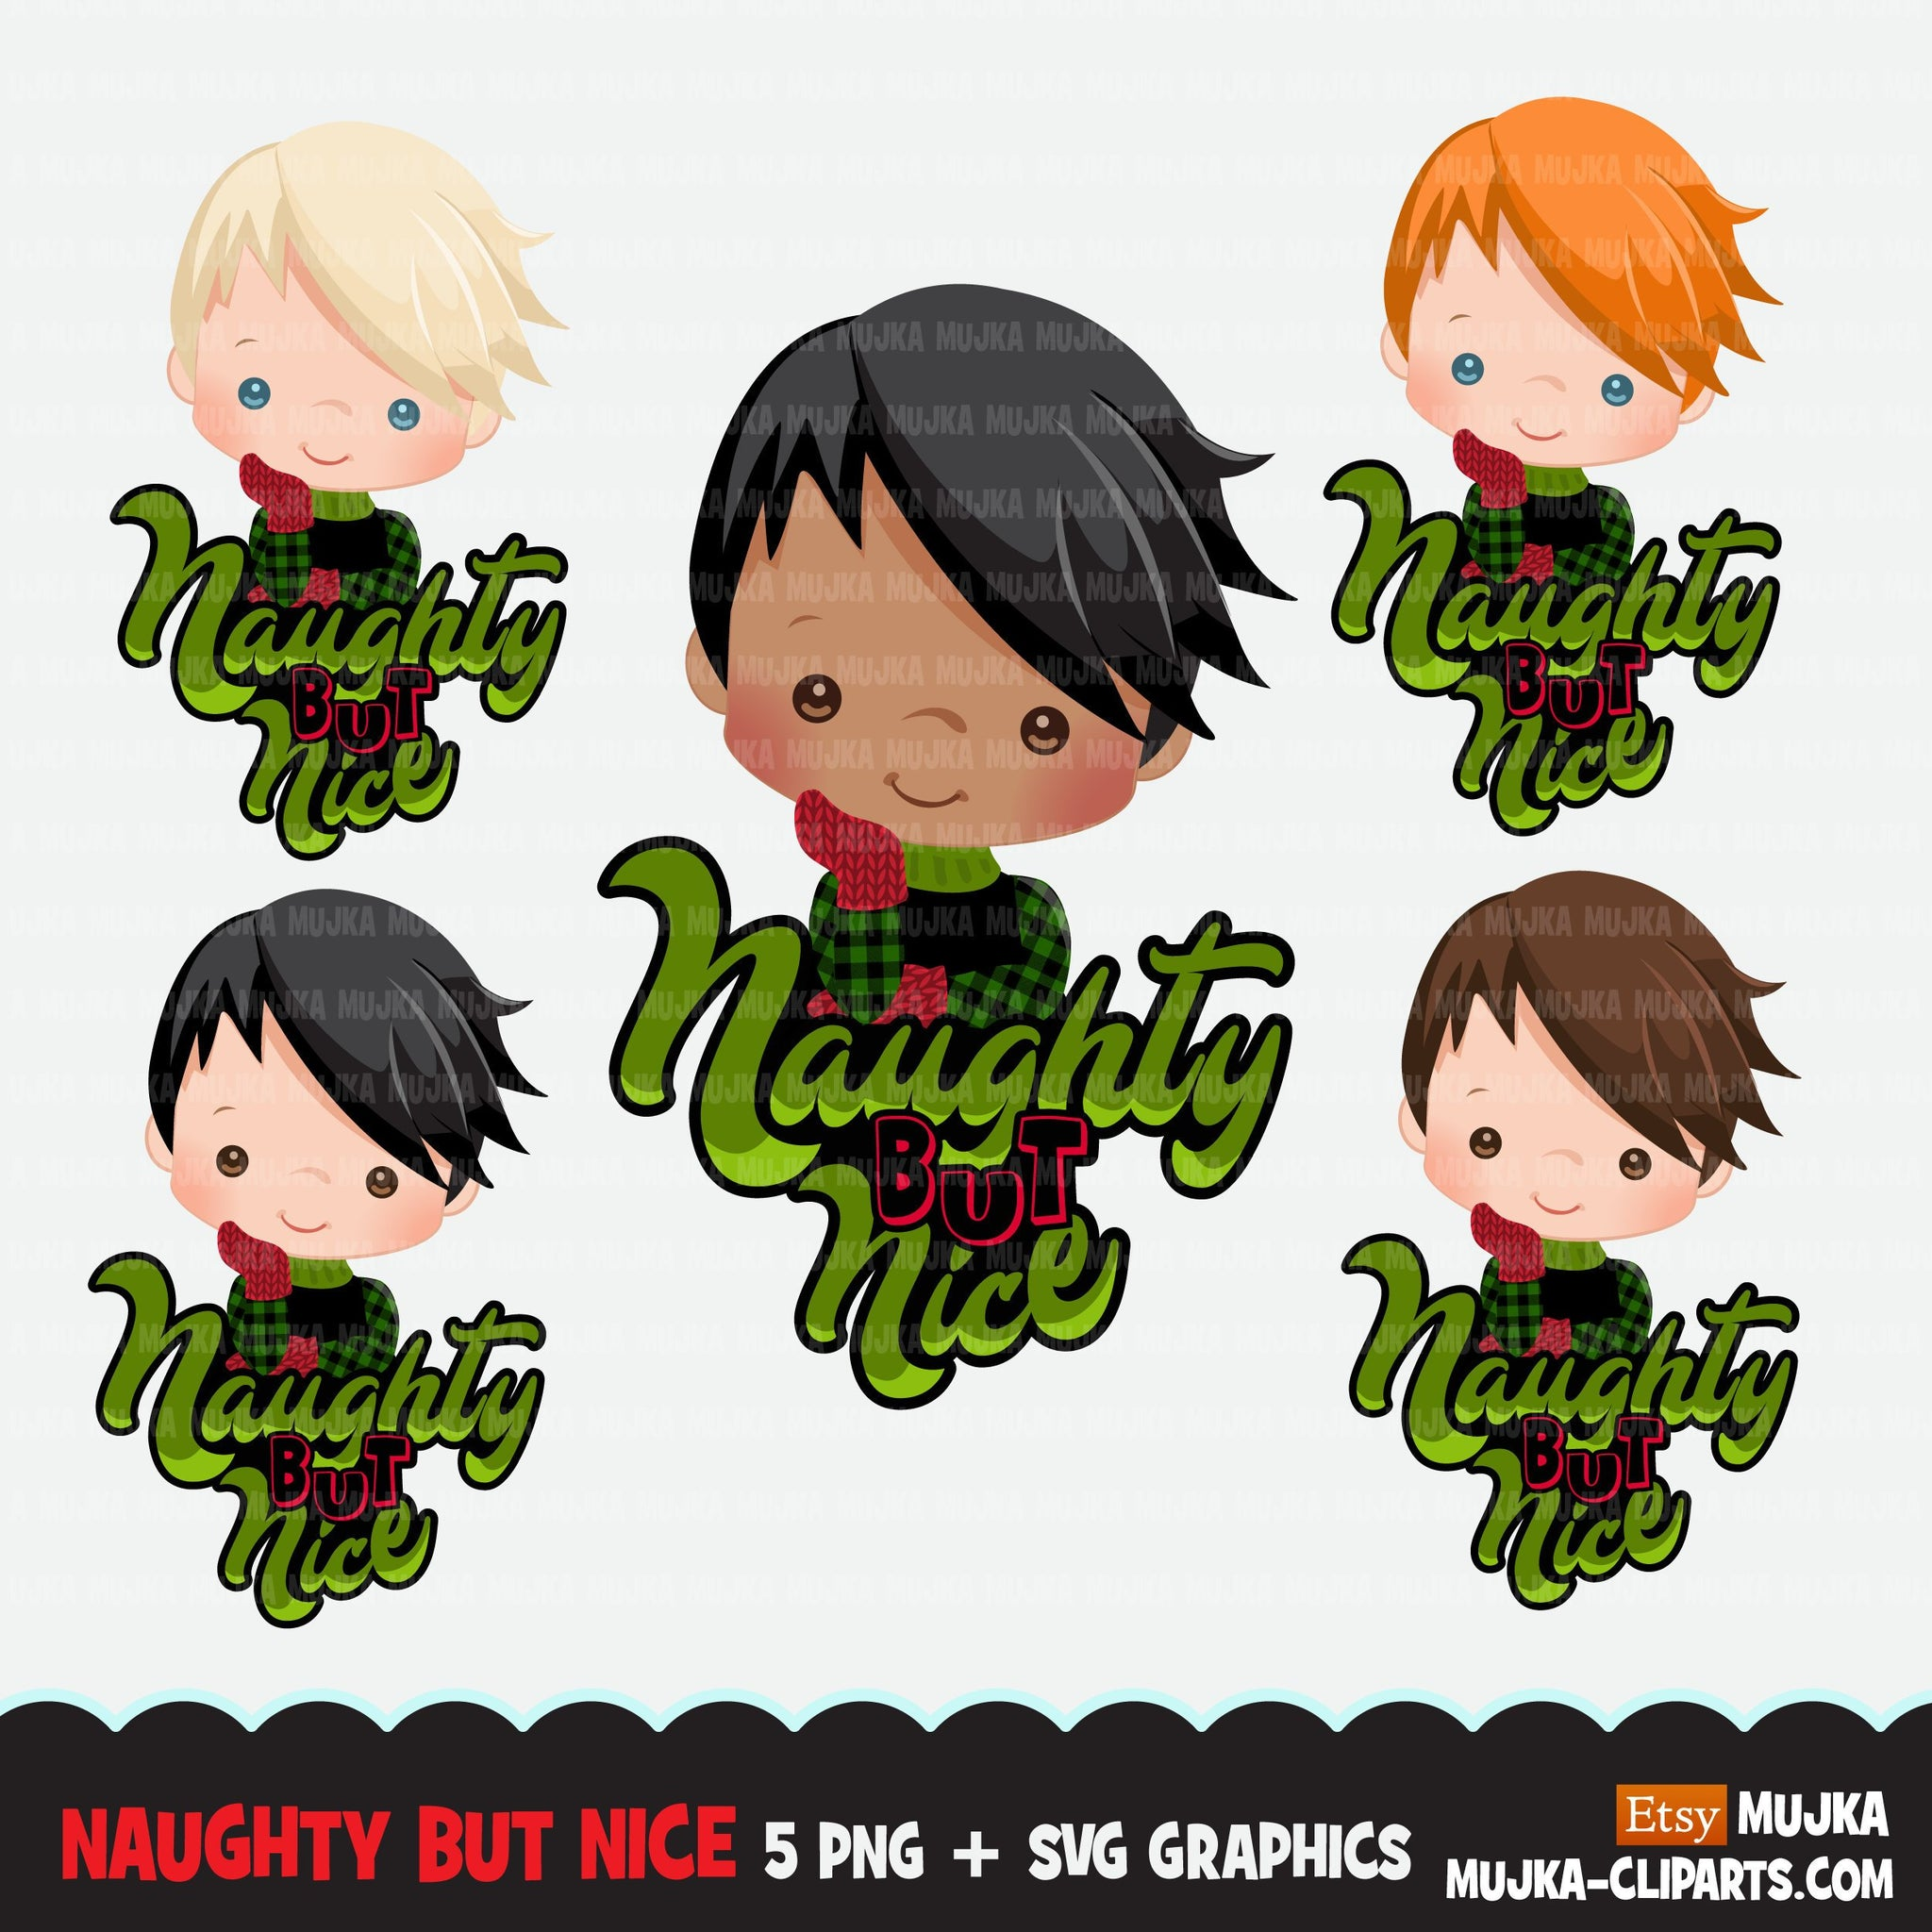 Christmas SVG PNG digital, Naughty but Nice HTV sublimation image transfer clipart, t-shirt graphics, Plaid little boy characters